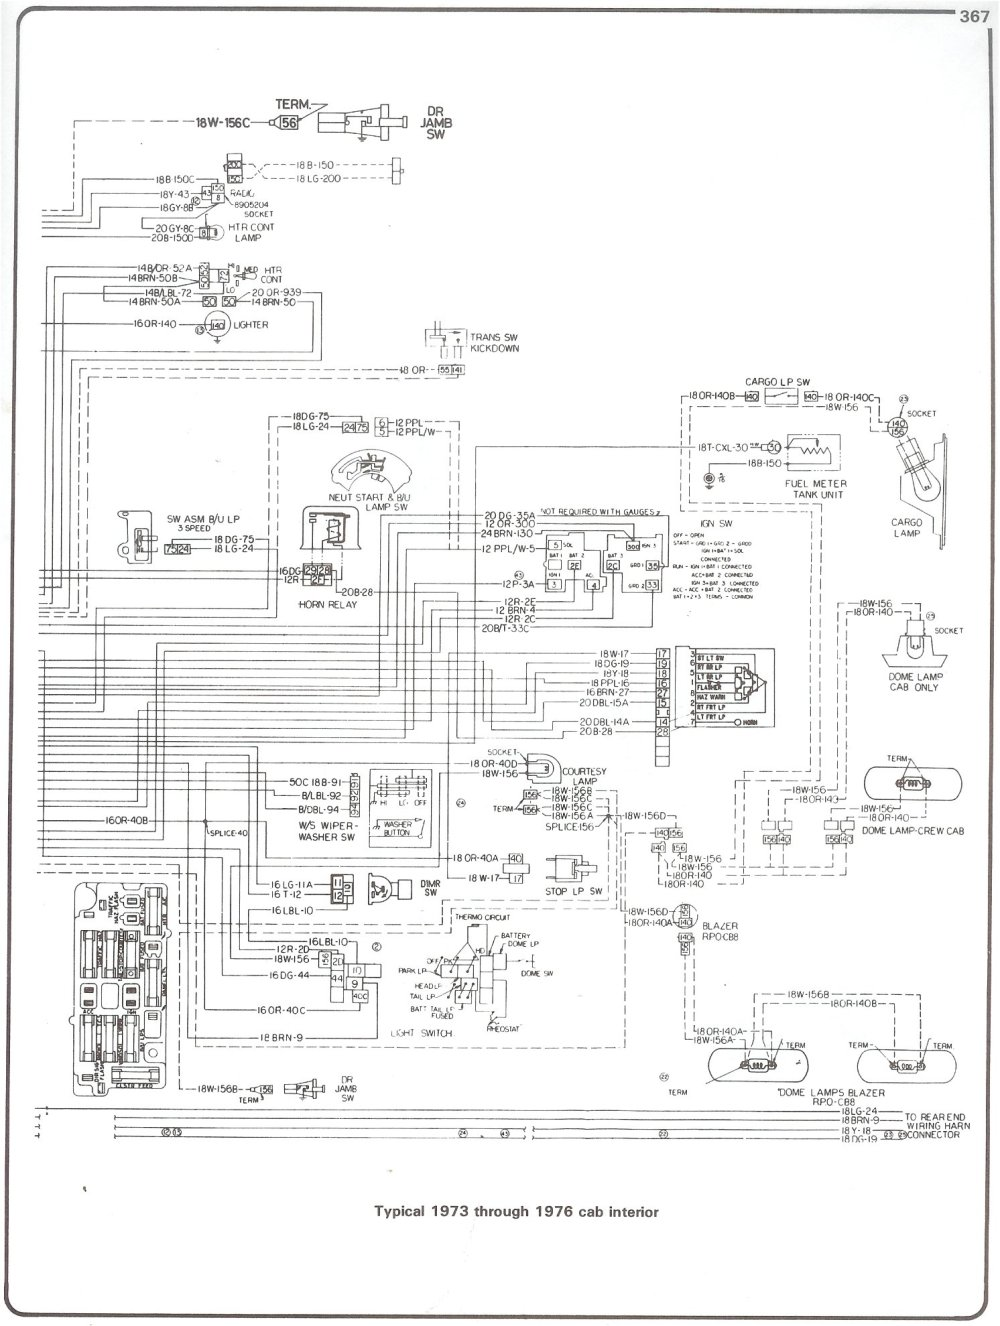 medium resolution of 1973 c10 wiring diagram schematic wiring diagrams mercury wiring harness 1973 c10 wiring harness